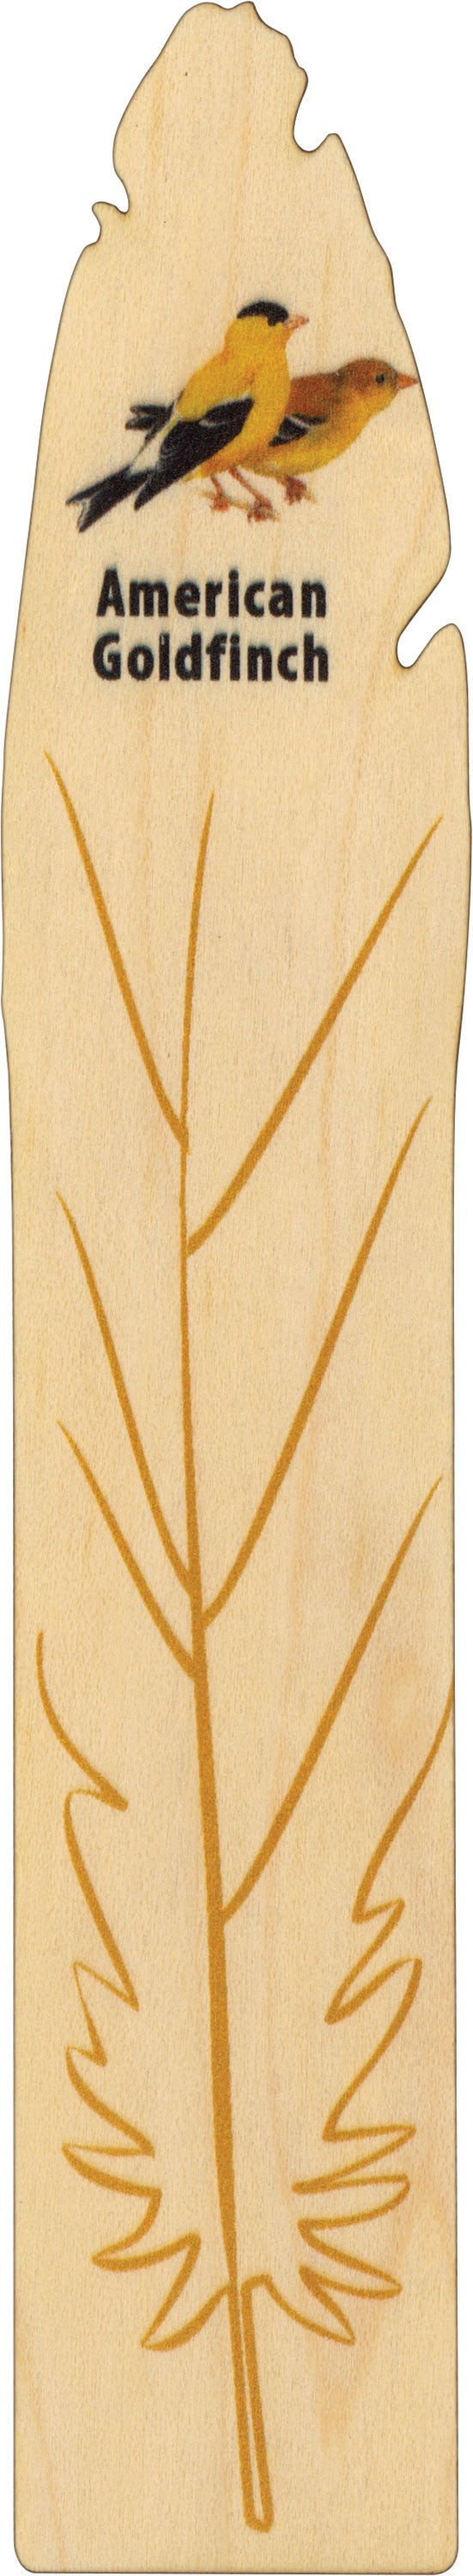 American Goldfinch Bookmark